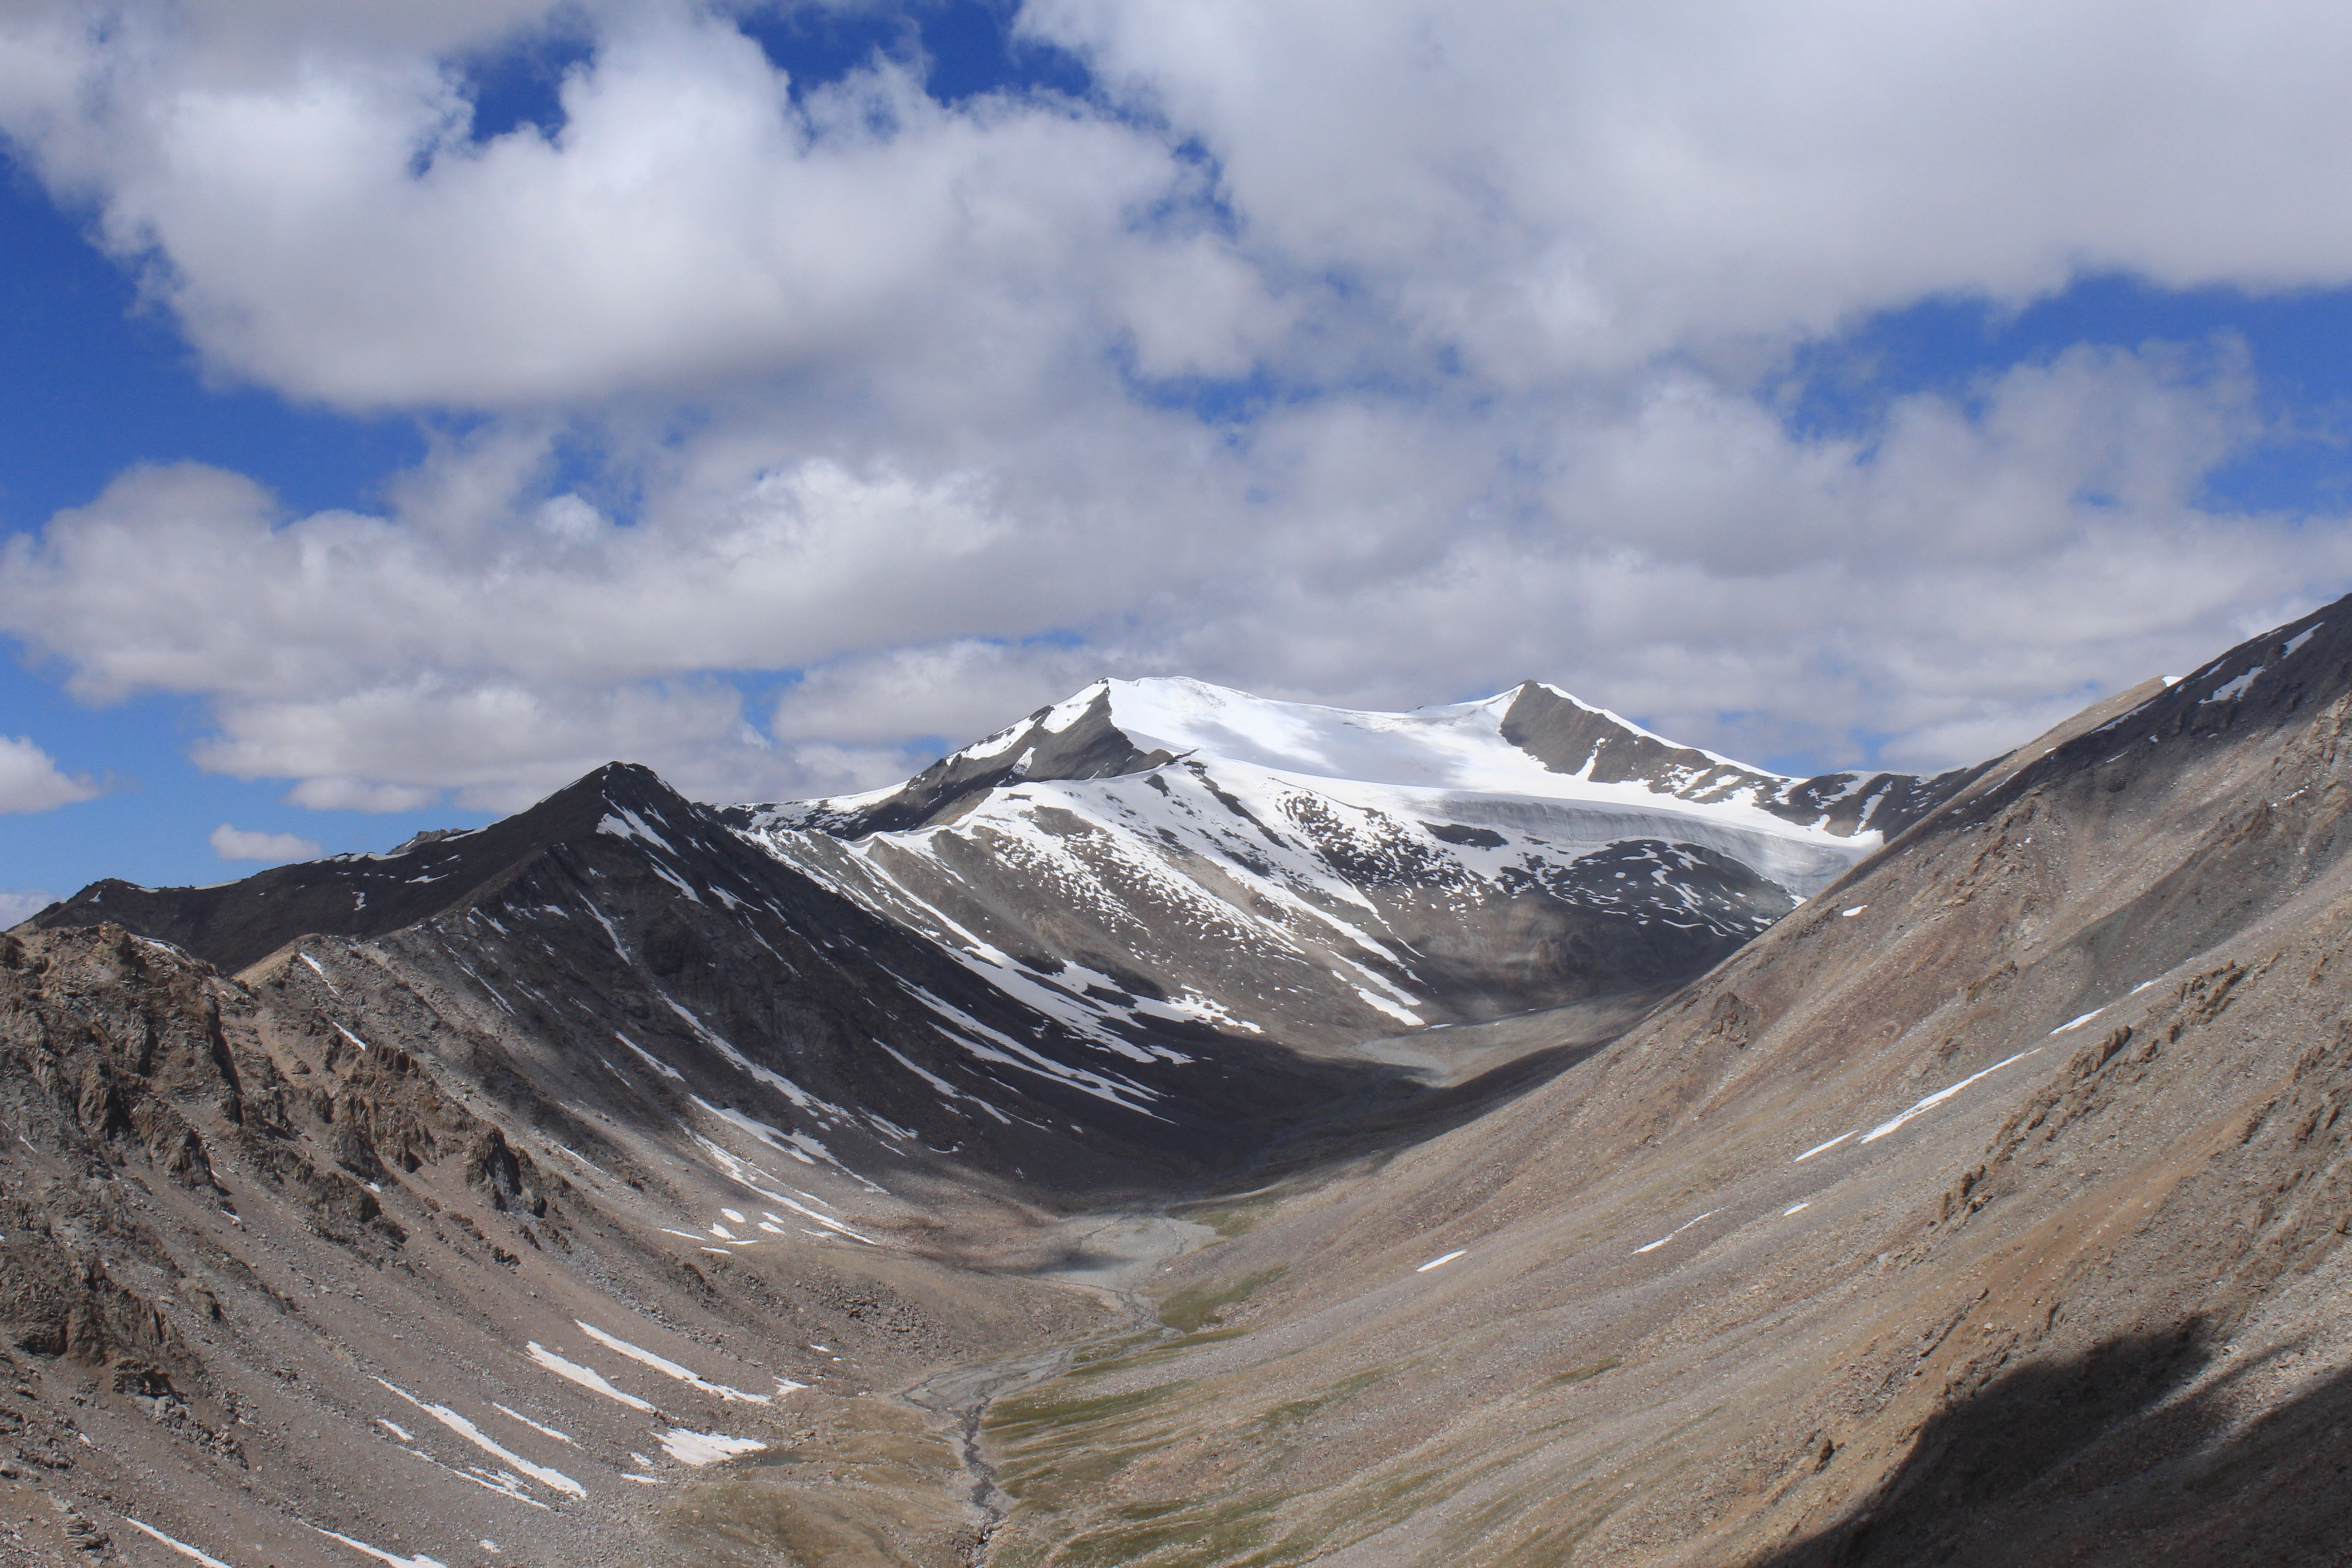 Beautiful mountain near Khardung La